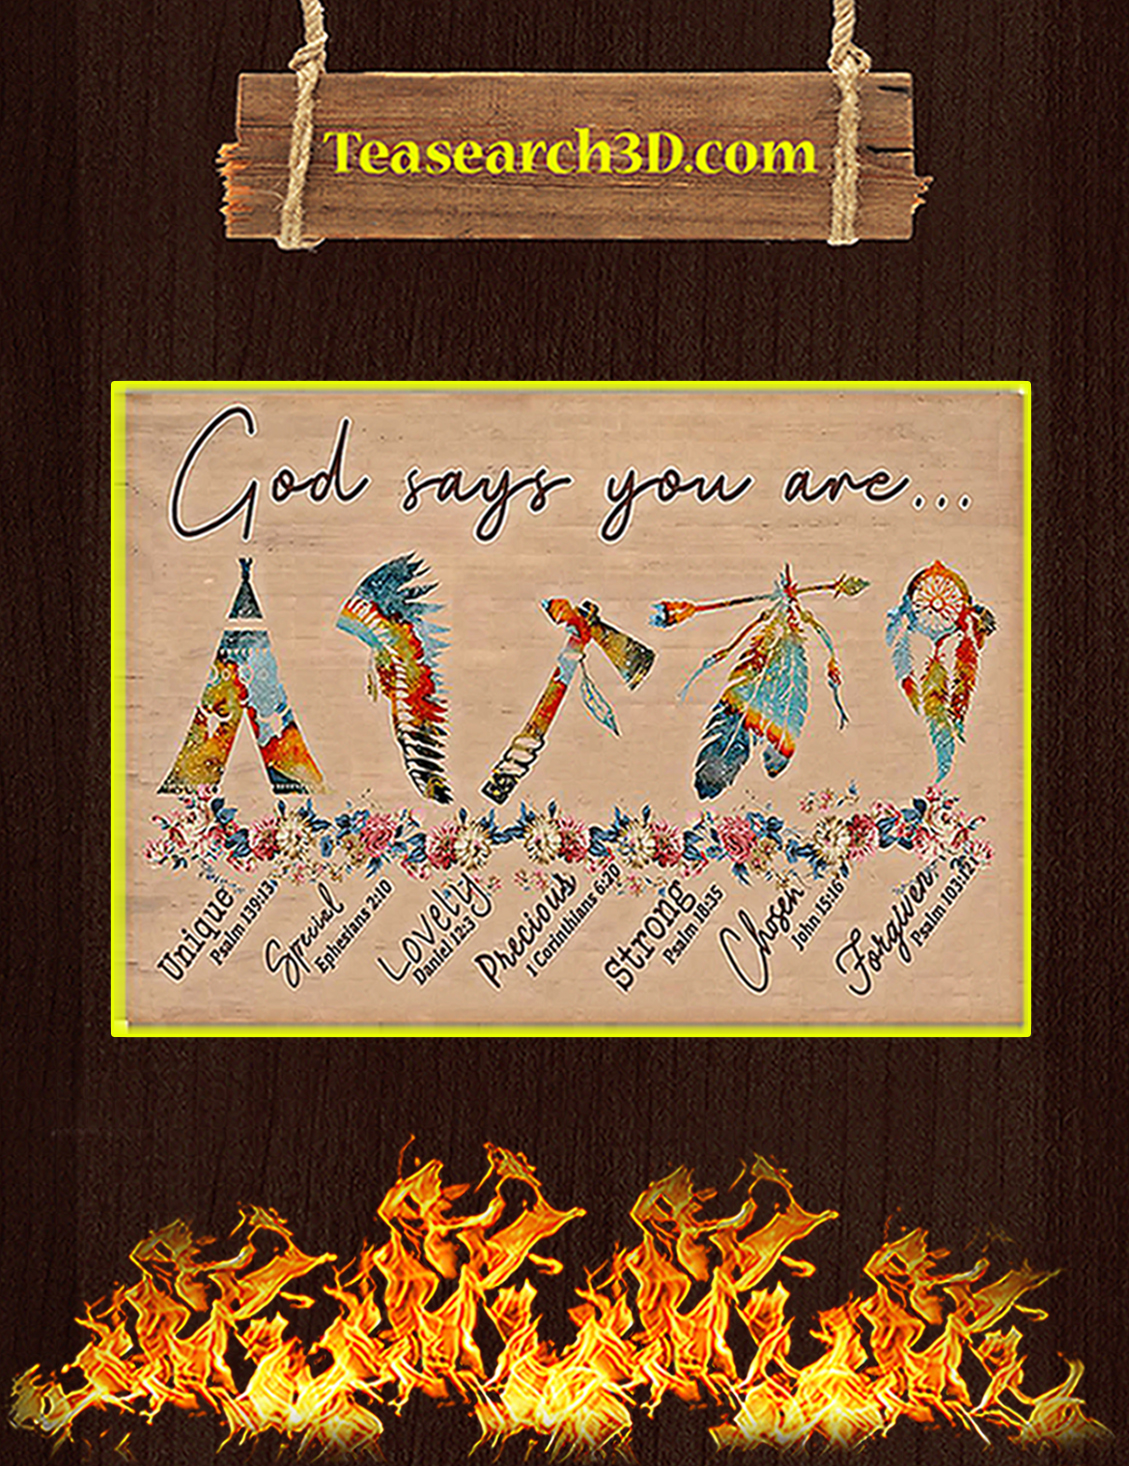 Native god says you are poster A3